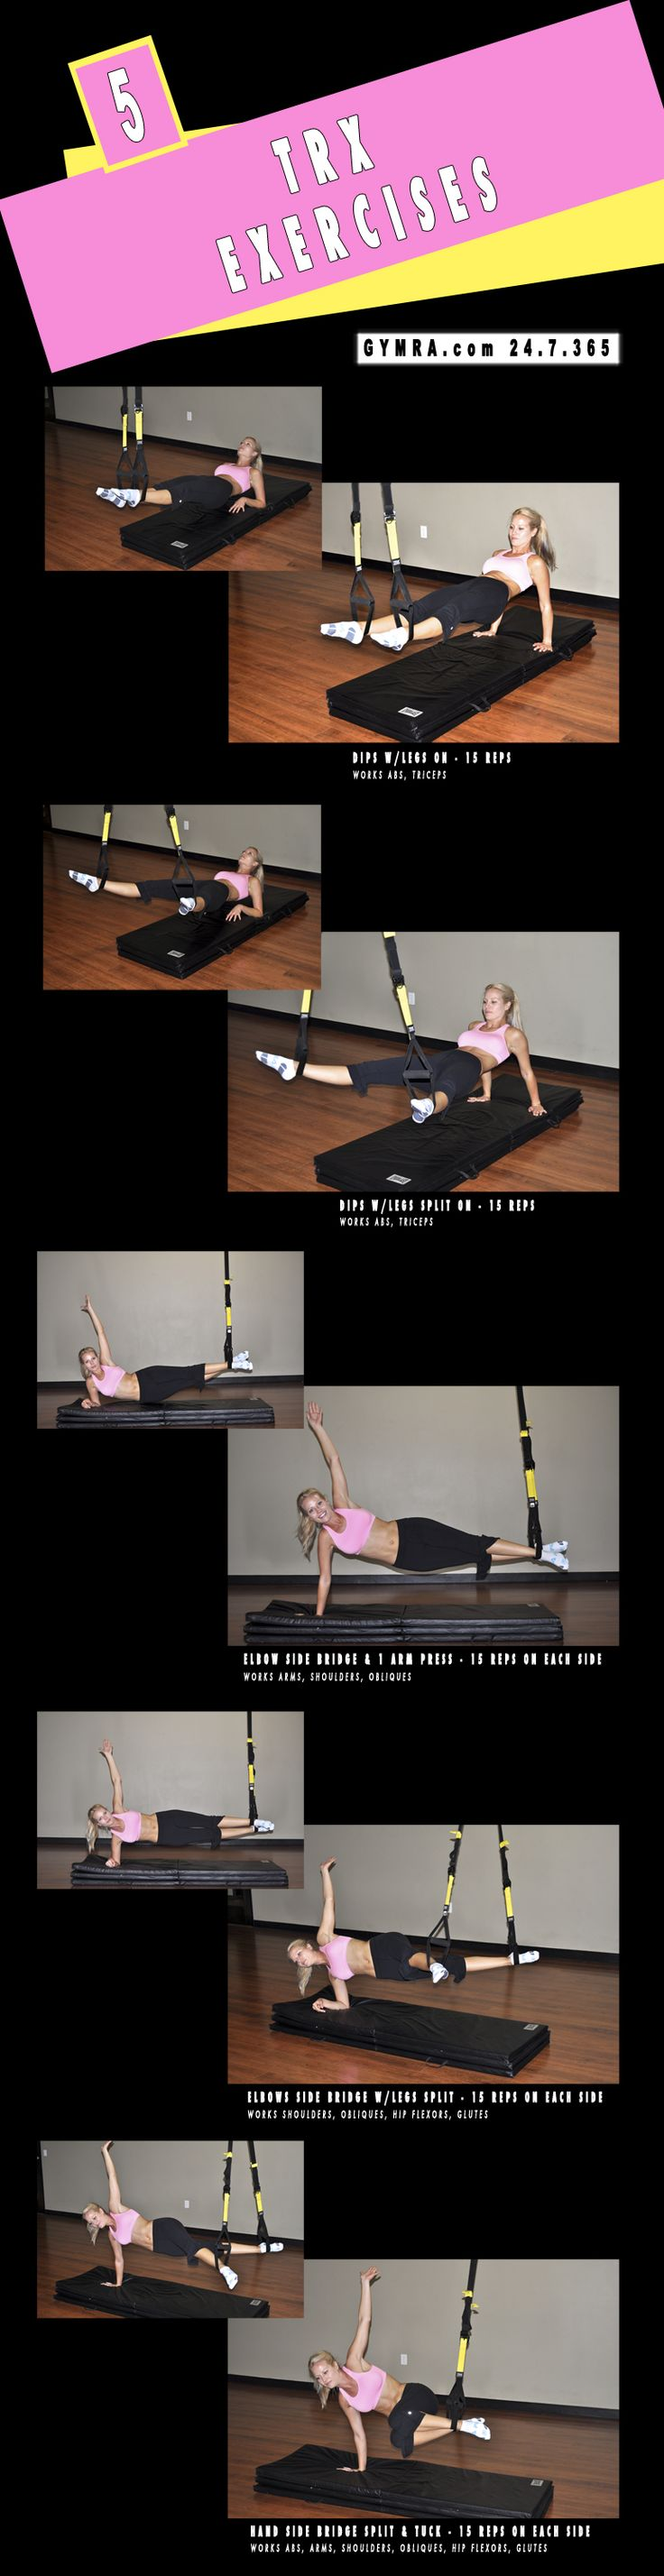 Suspension Training, TRX workout - http://www.amazon.de/dp/B00RLH0M6C http://www.amazon.co.uk/dp/B00RLH0M6C